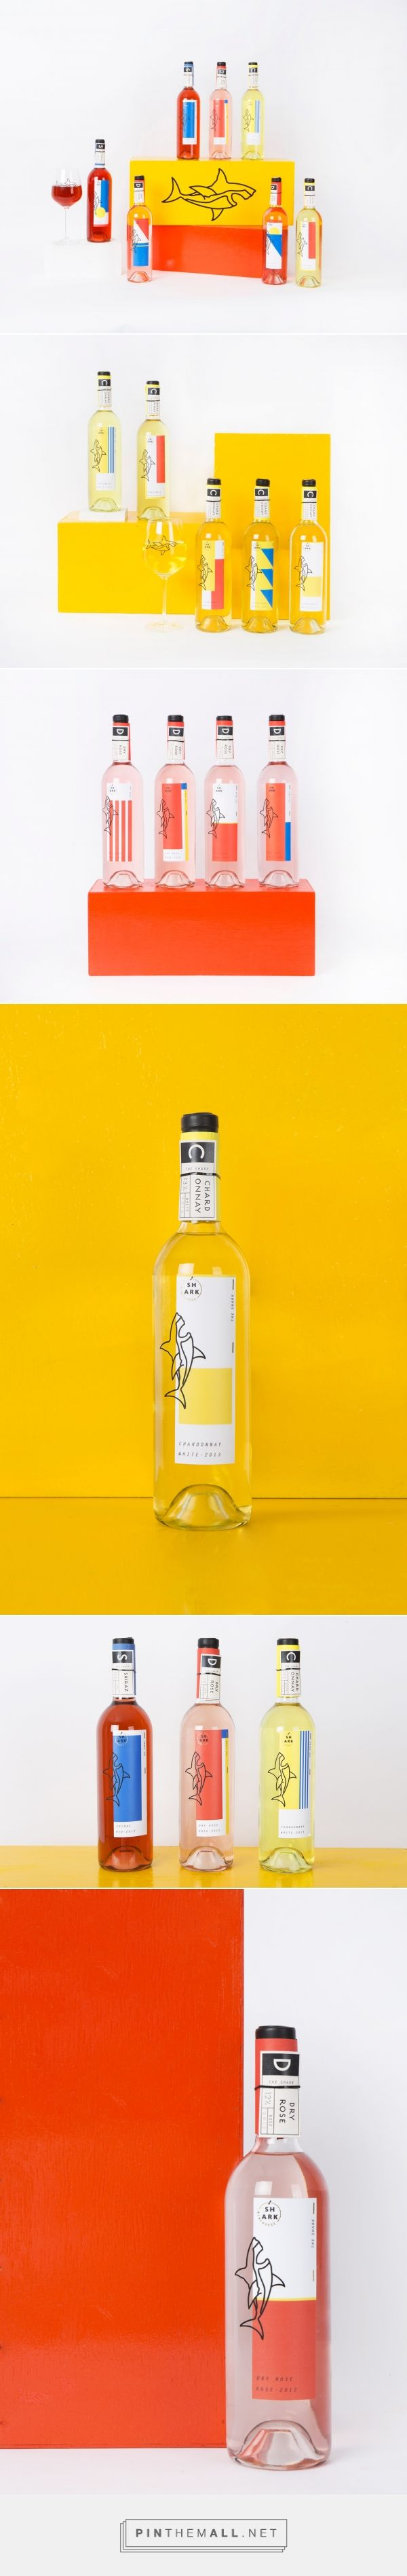 The Shark Wine Packaging by Ahra Song   Fivestar Branding Agency – Design and Branding Agency & Curated Inspiration Gallery